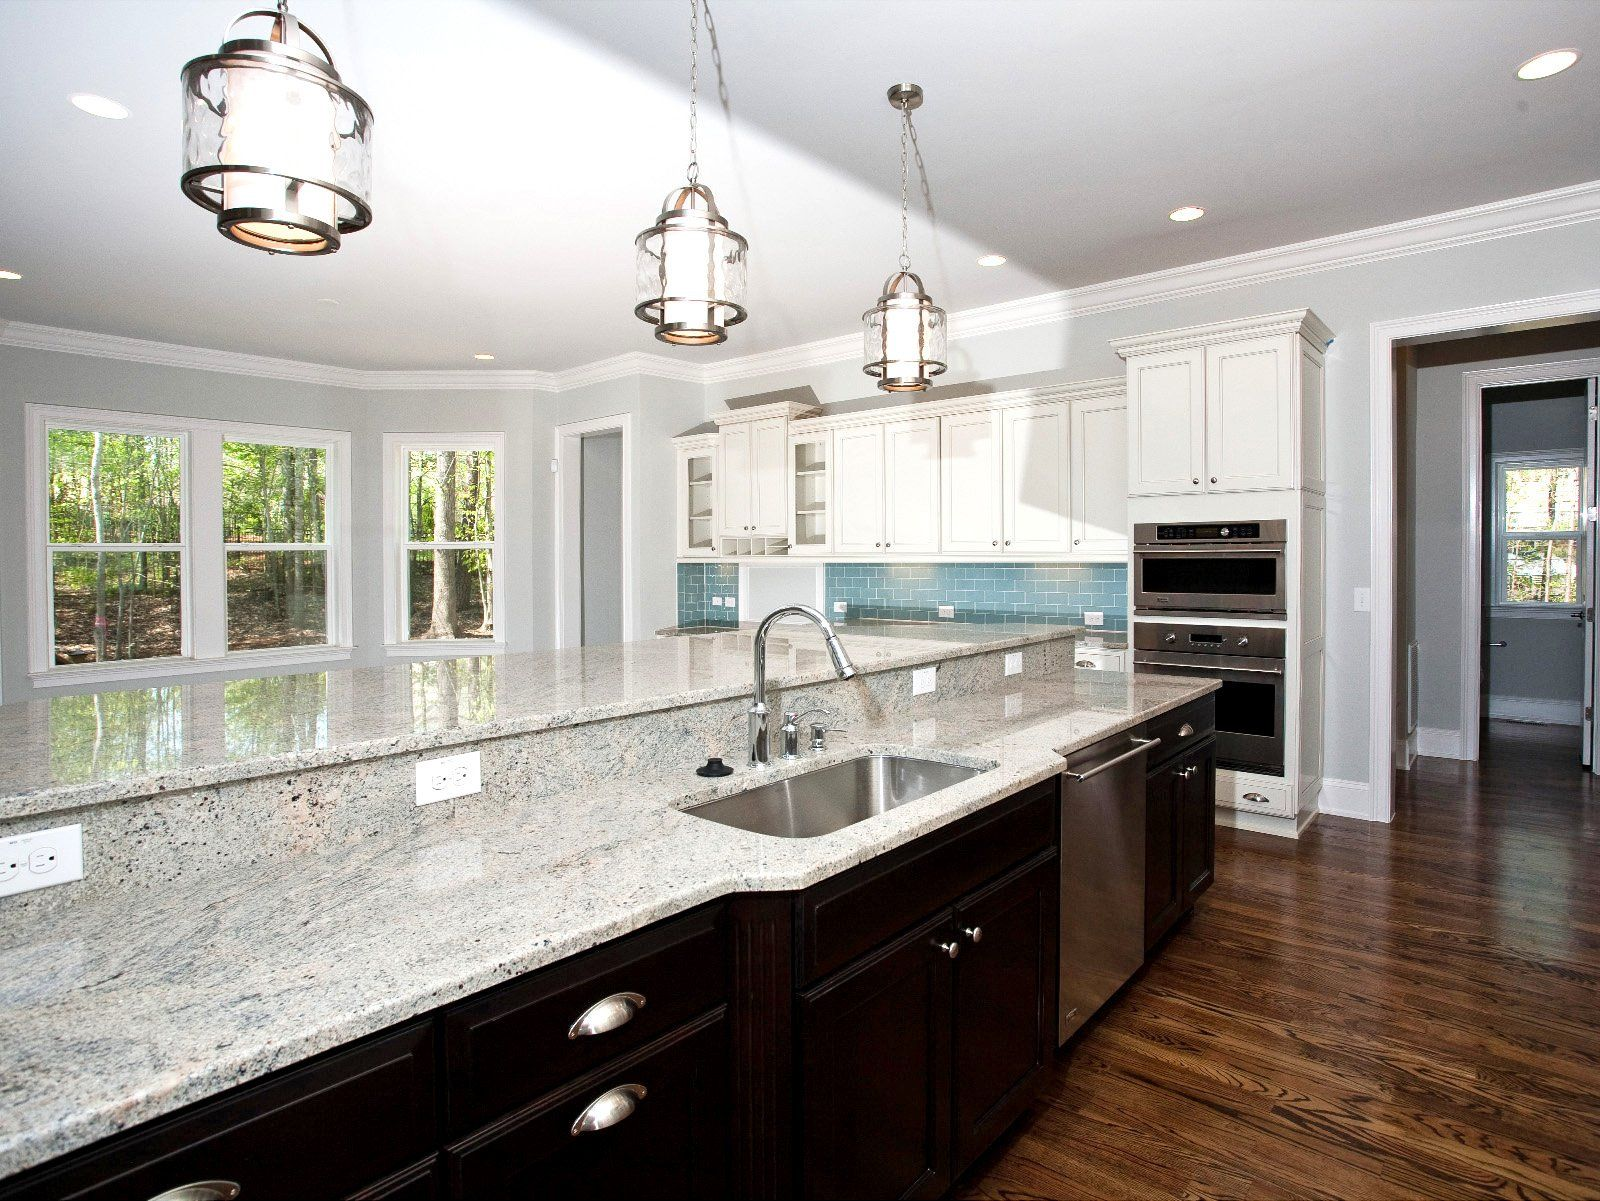 Black Cabinets Light Granite Countertops and a Blue Glass back